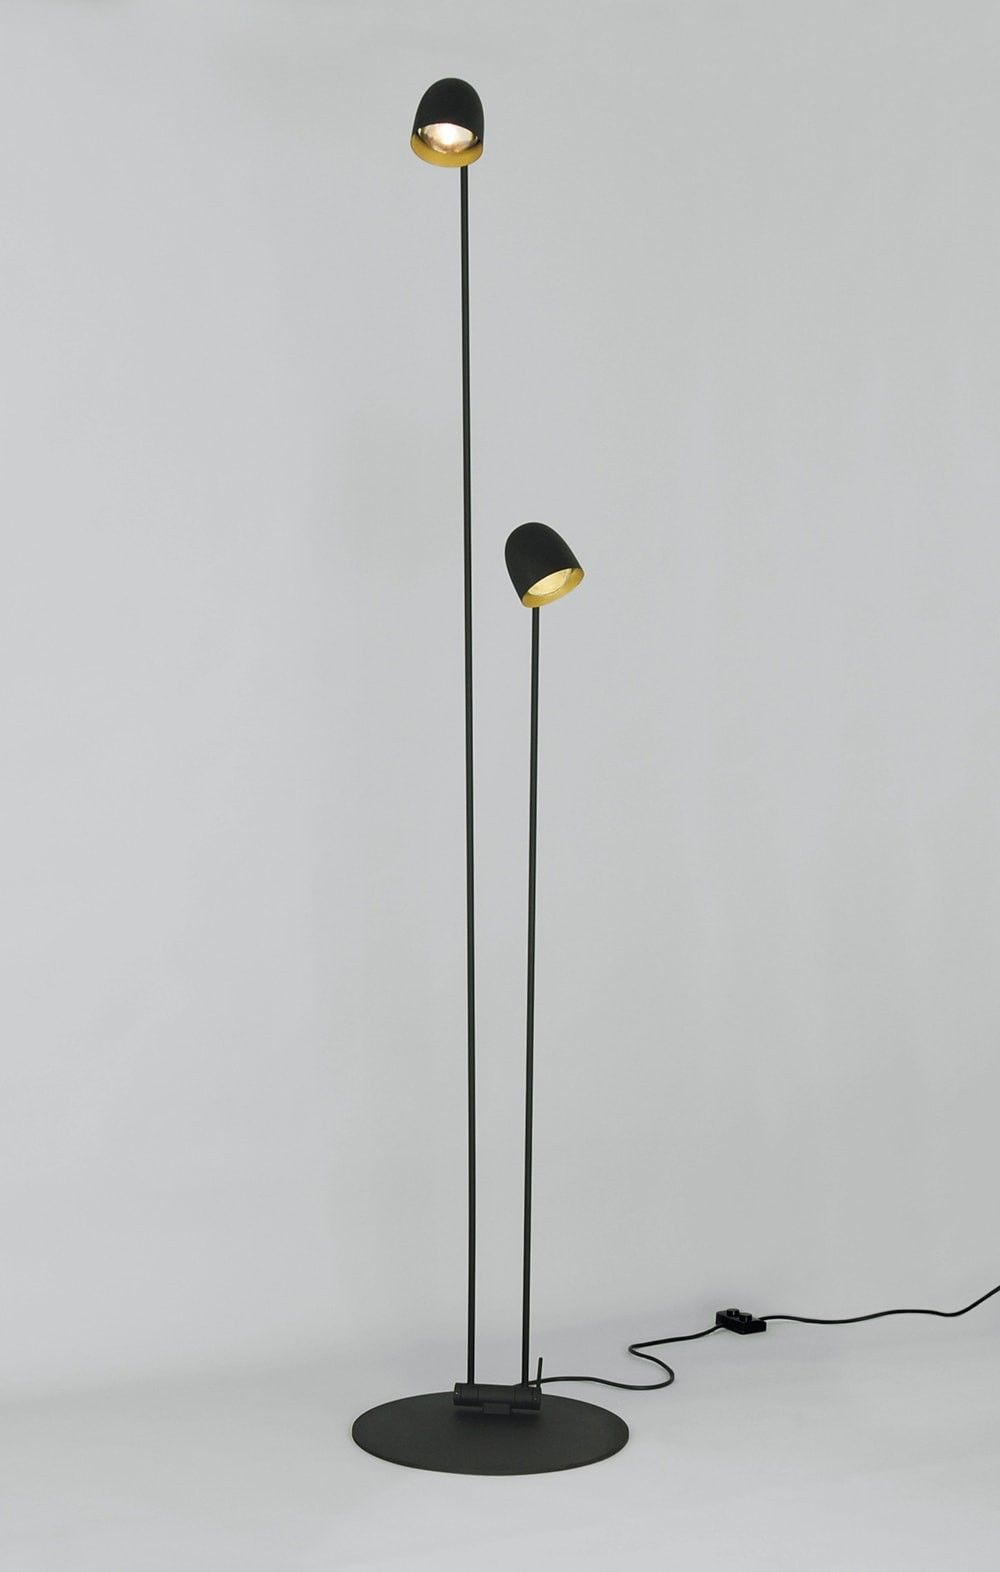 Rock Your Home With A Black Floor Lamp Beautiful Floor Lamps Modern Floor Lamps Floor Lamp Black contemporary floor lamp